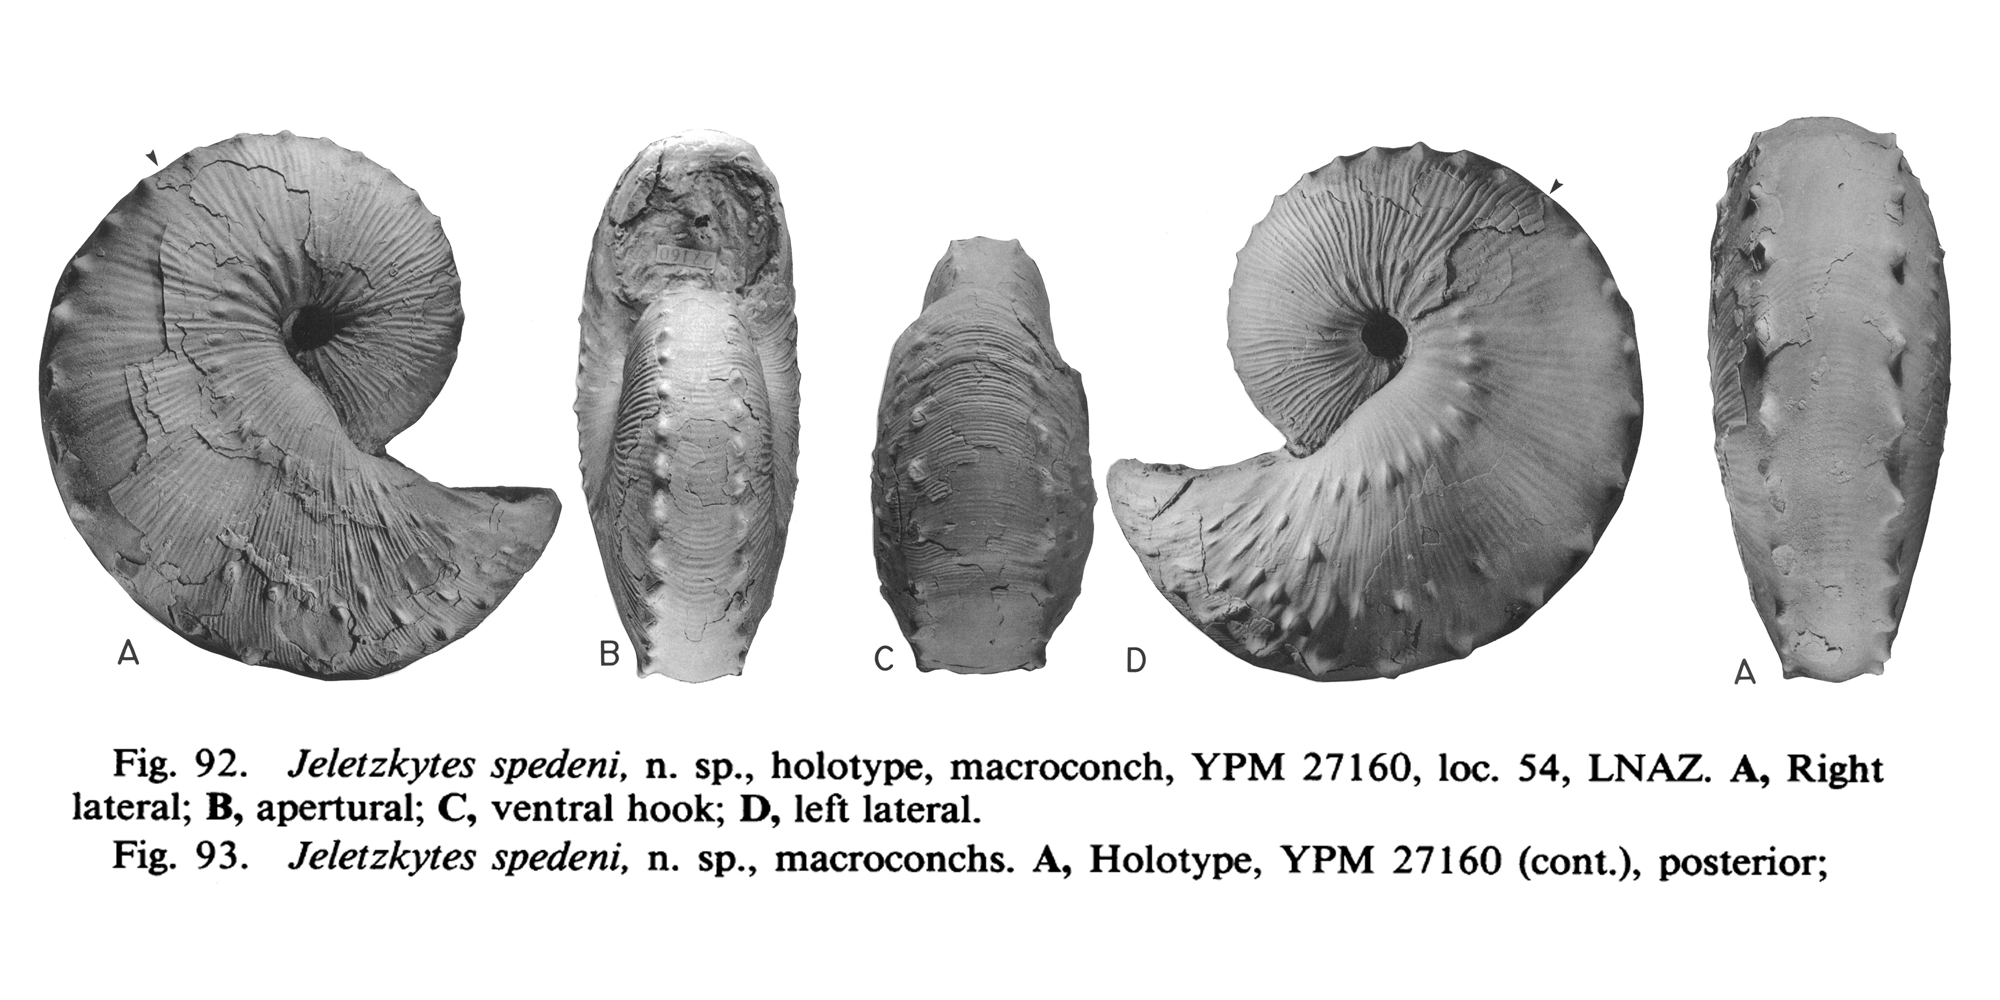 Holotype of <i>Hoploscaphites spedeni</i> (YPM 27160) (macroconch). See original caption for additional details. Image modified from figs. 92A-D and 93A in Landman and Waage (1993 in <i>Bulletin of the American Museum of Natural History</i>, no. 215) and used with permission.